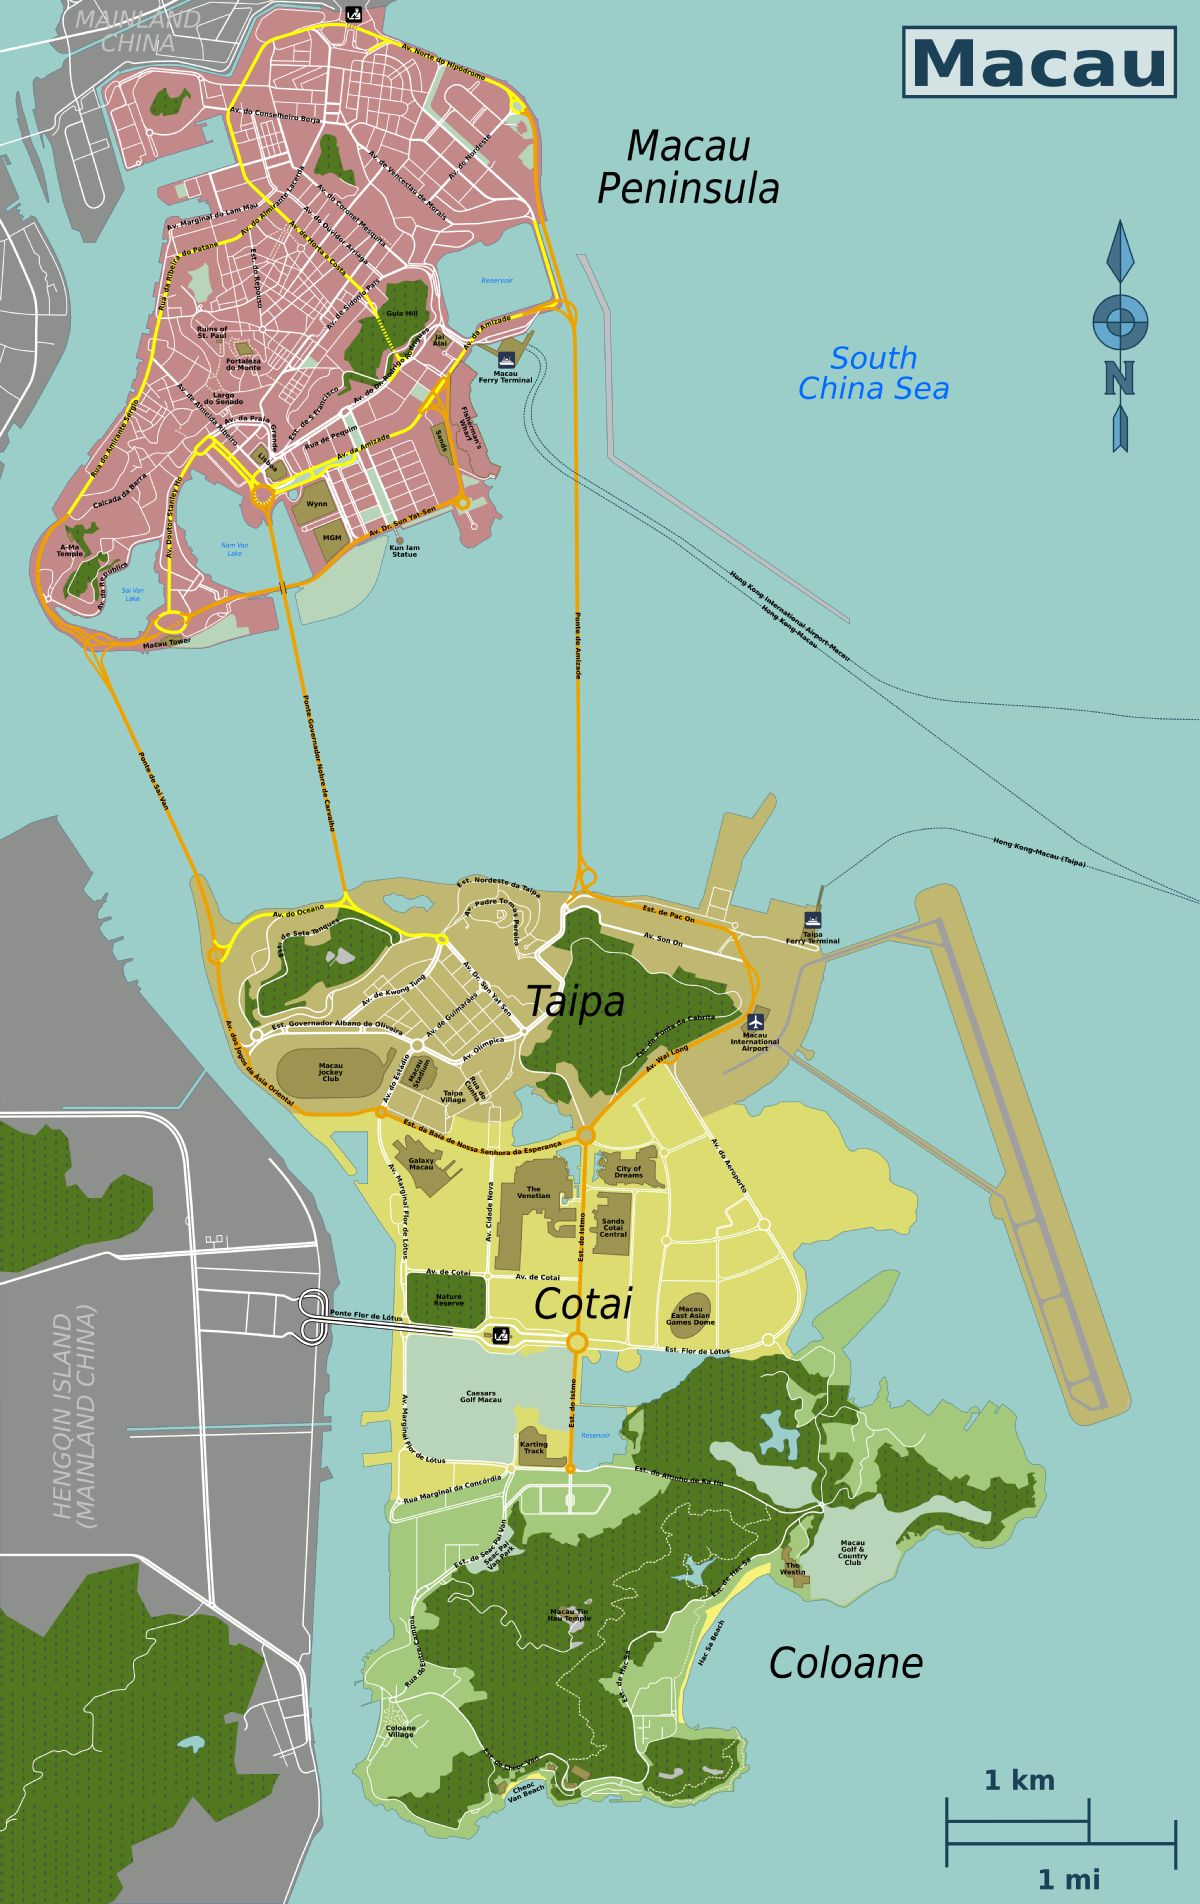 Macau Travel Guide At Wikivoyage - Where is macau in the world